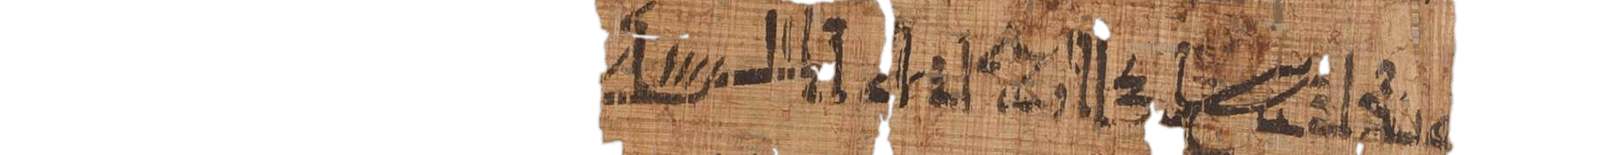 the Turin king list 3.8 (photo of the hieratic text)